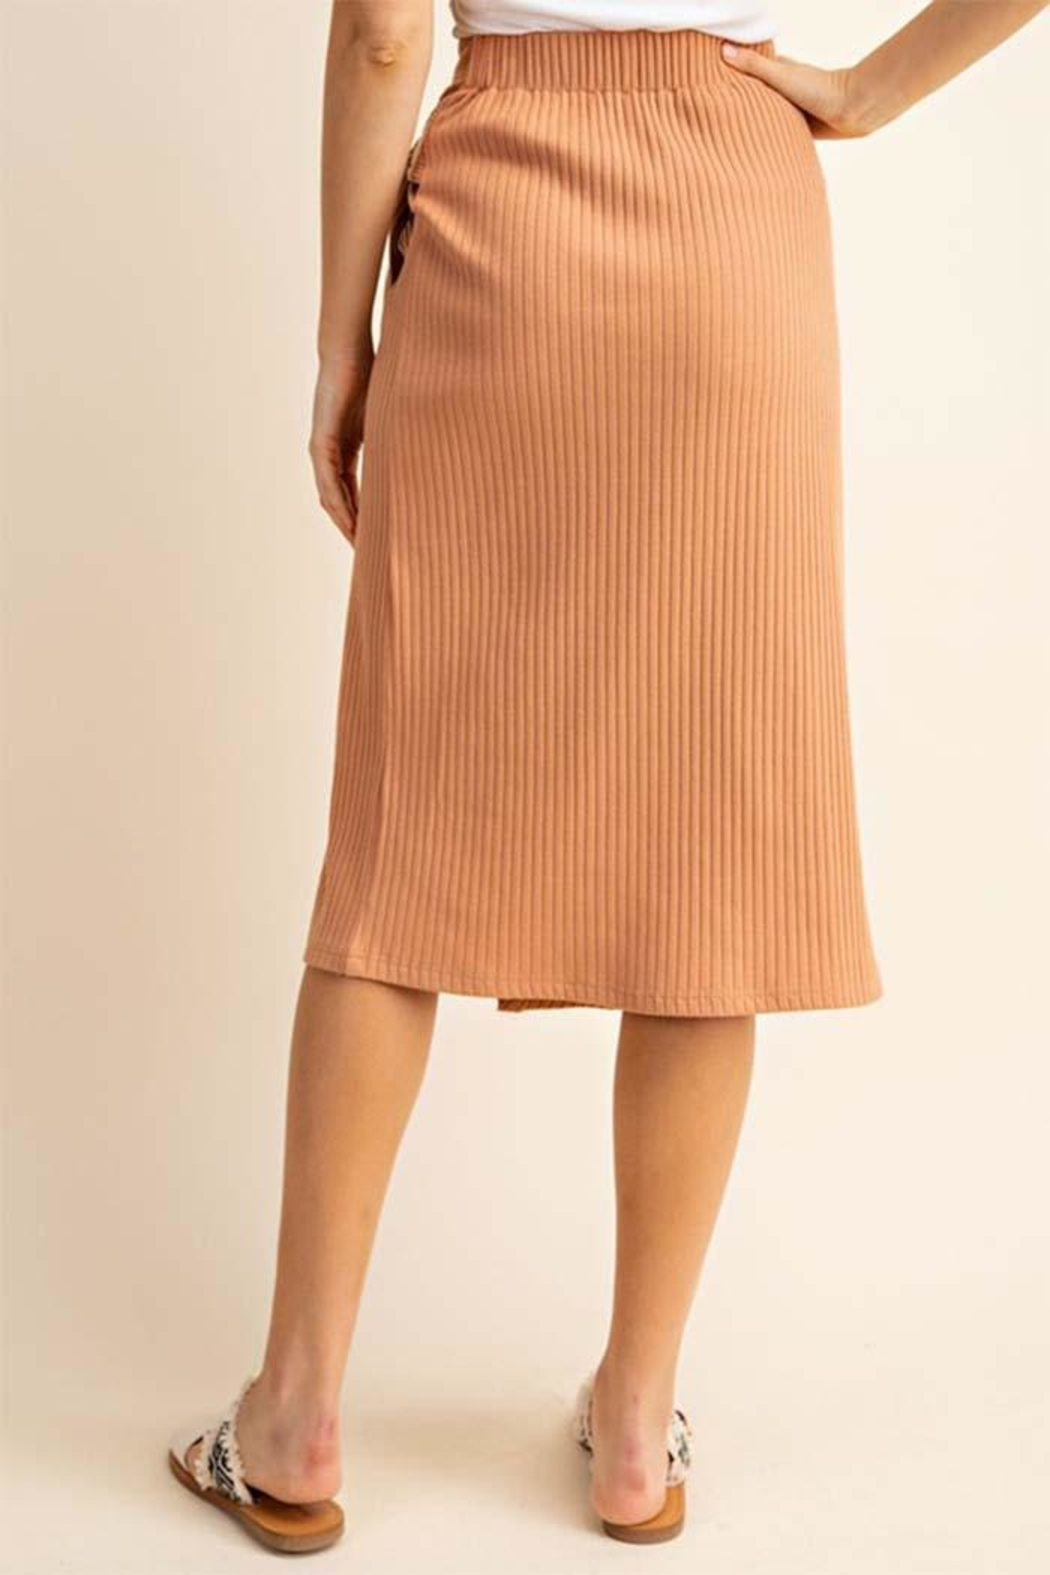 Gilli Buckle Tie Skirt - Side Cropped Image